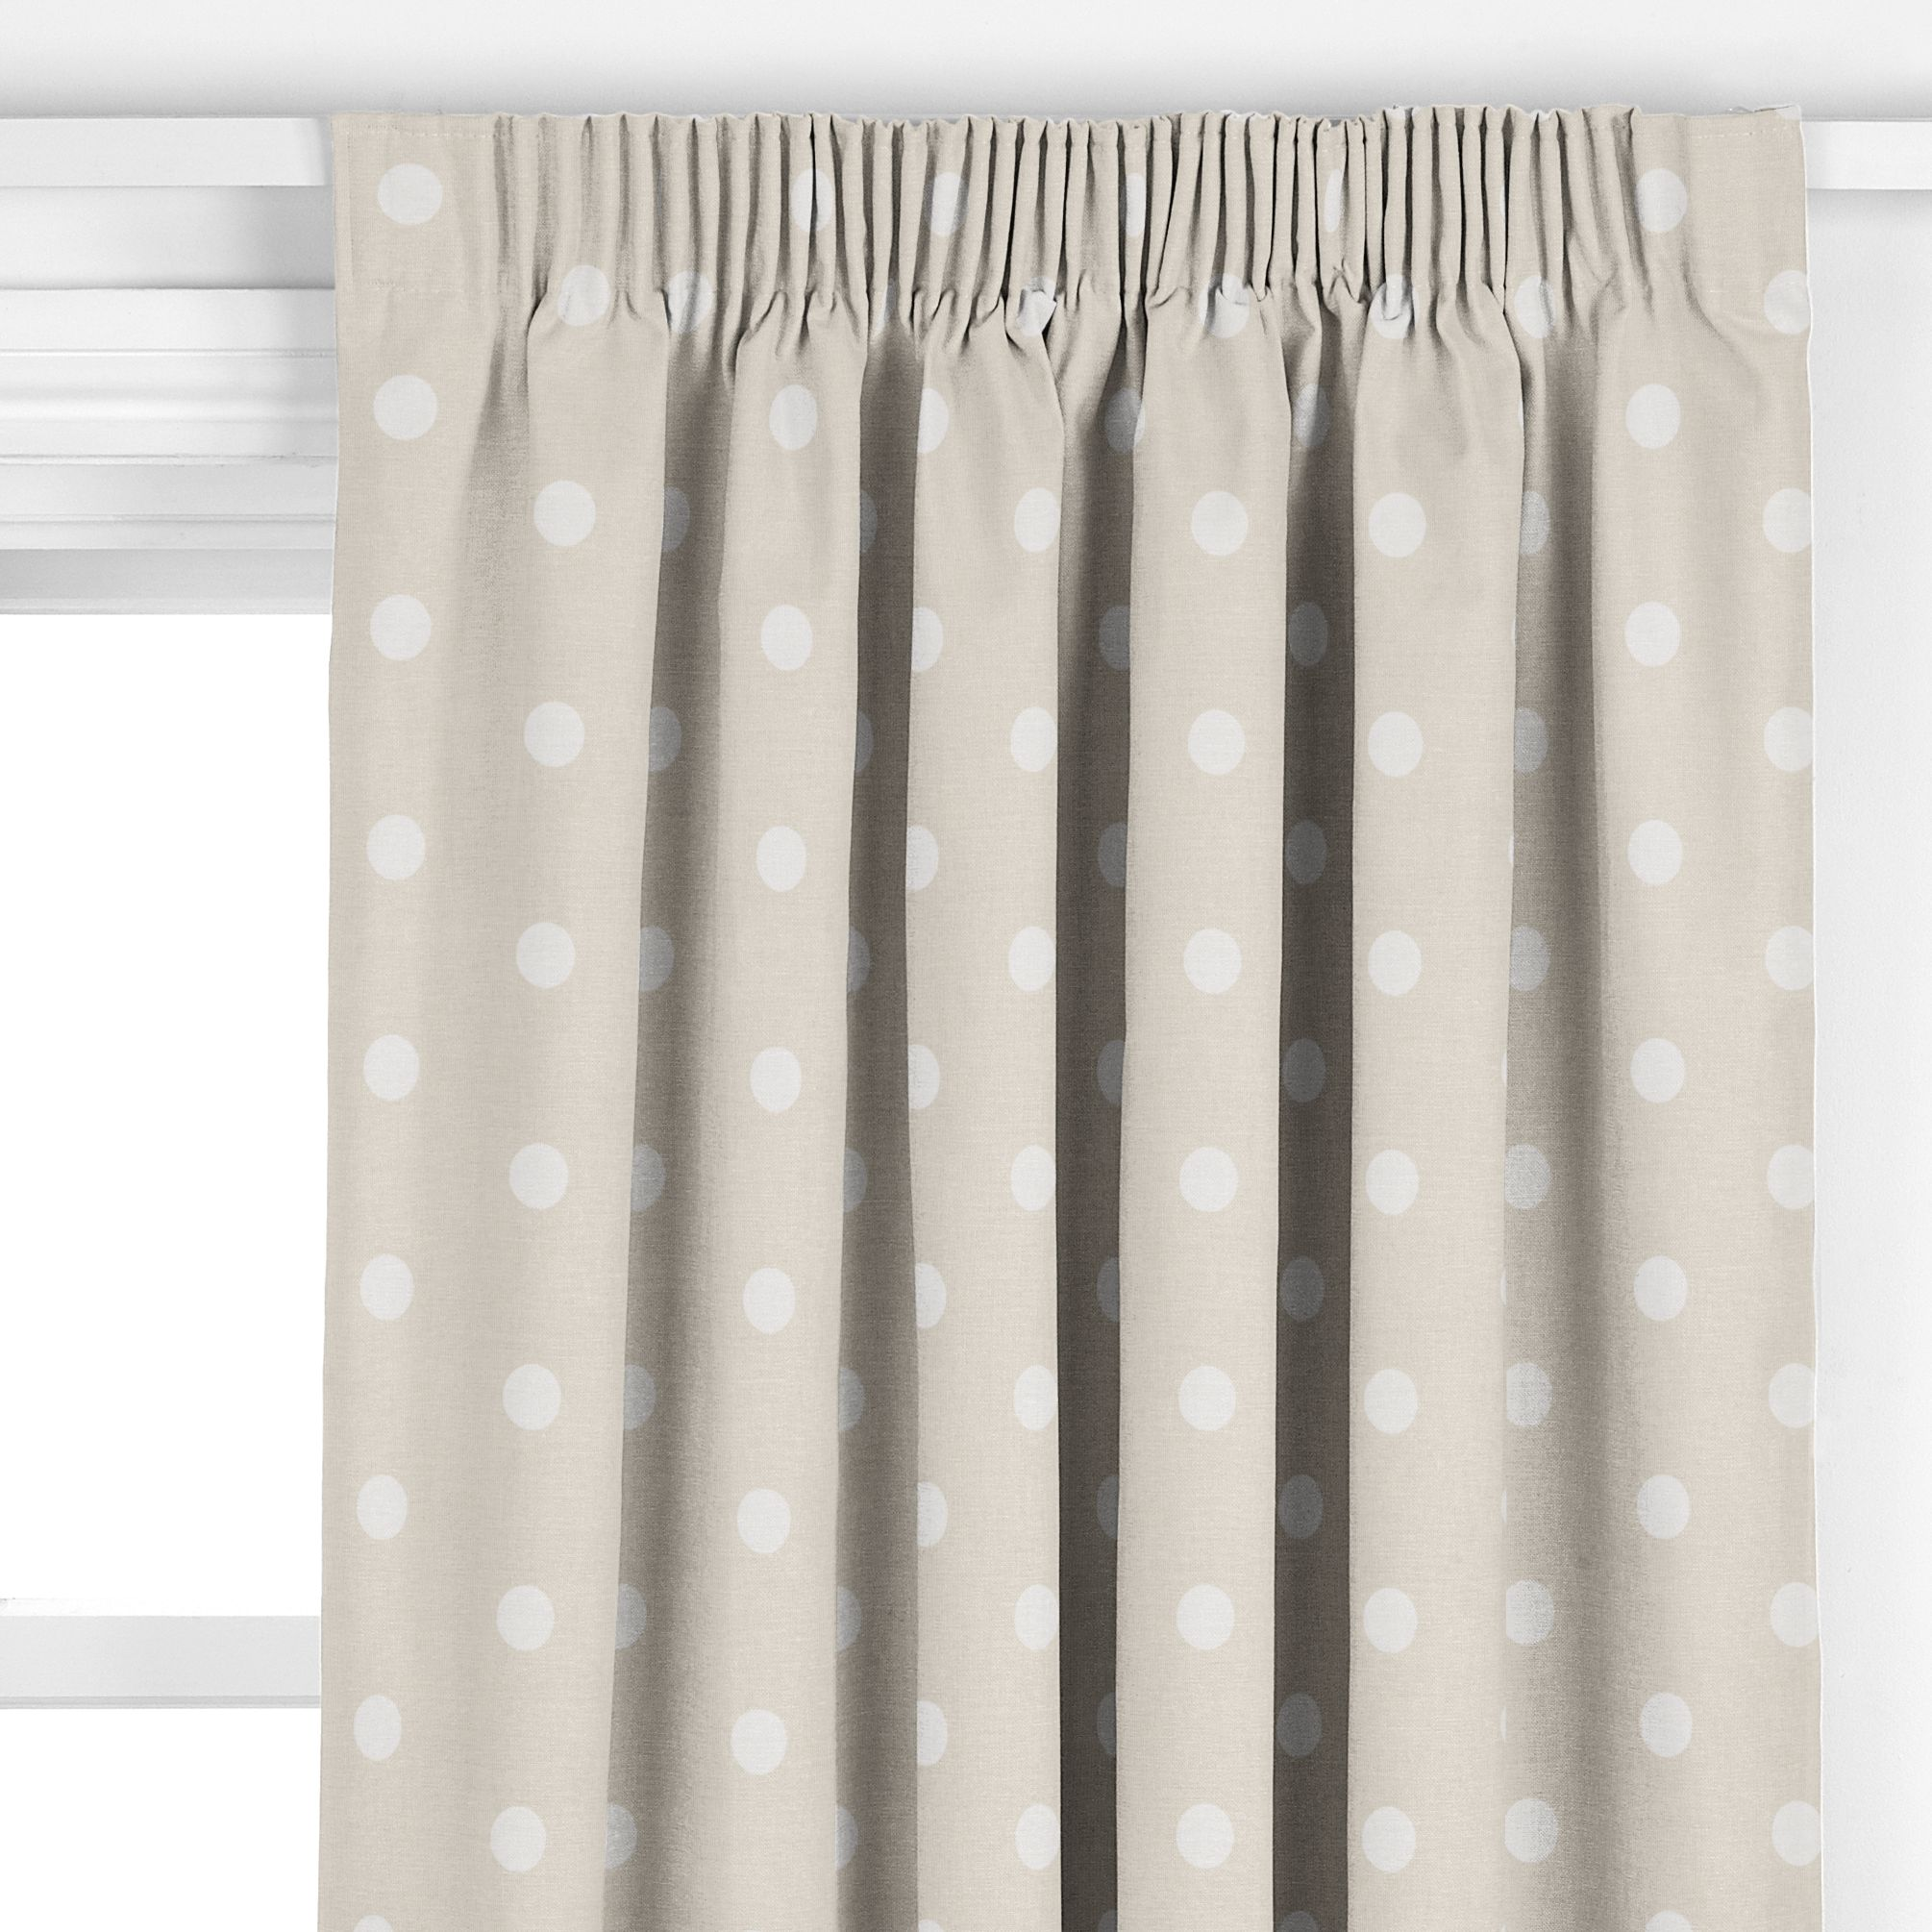 John lewis multi spot curtains white beige review for Pencil pleat curtains on track